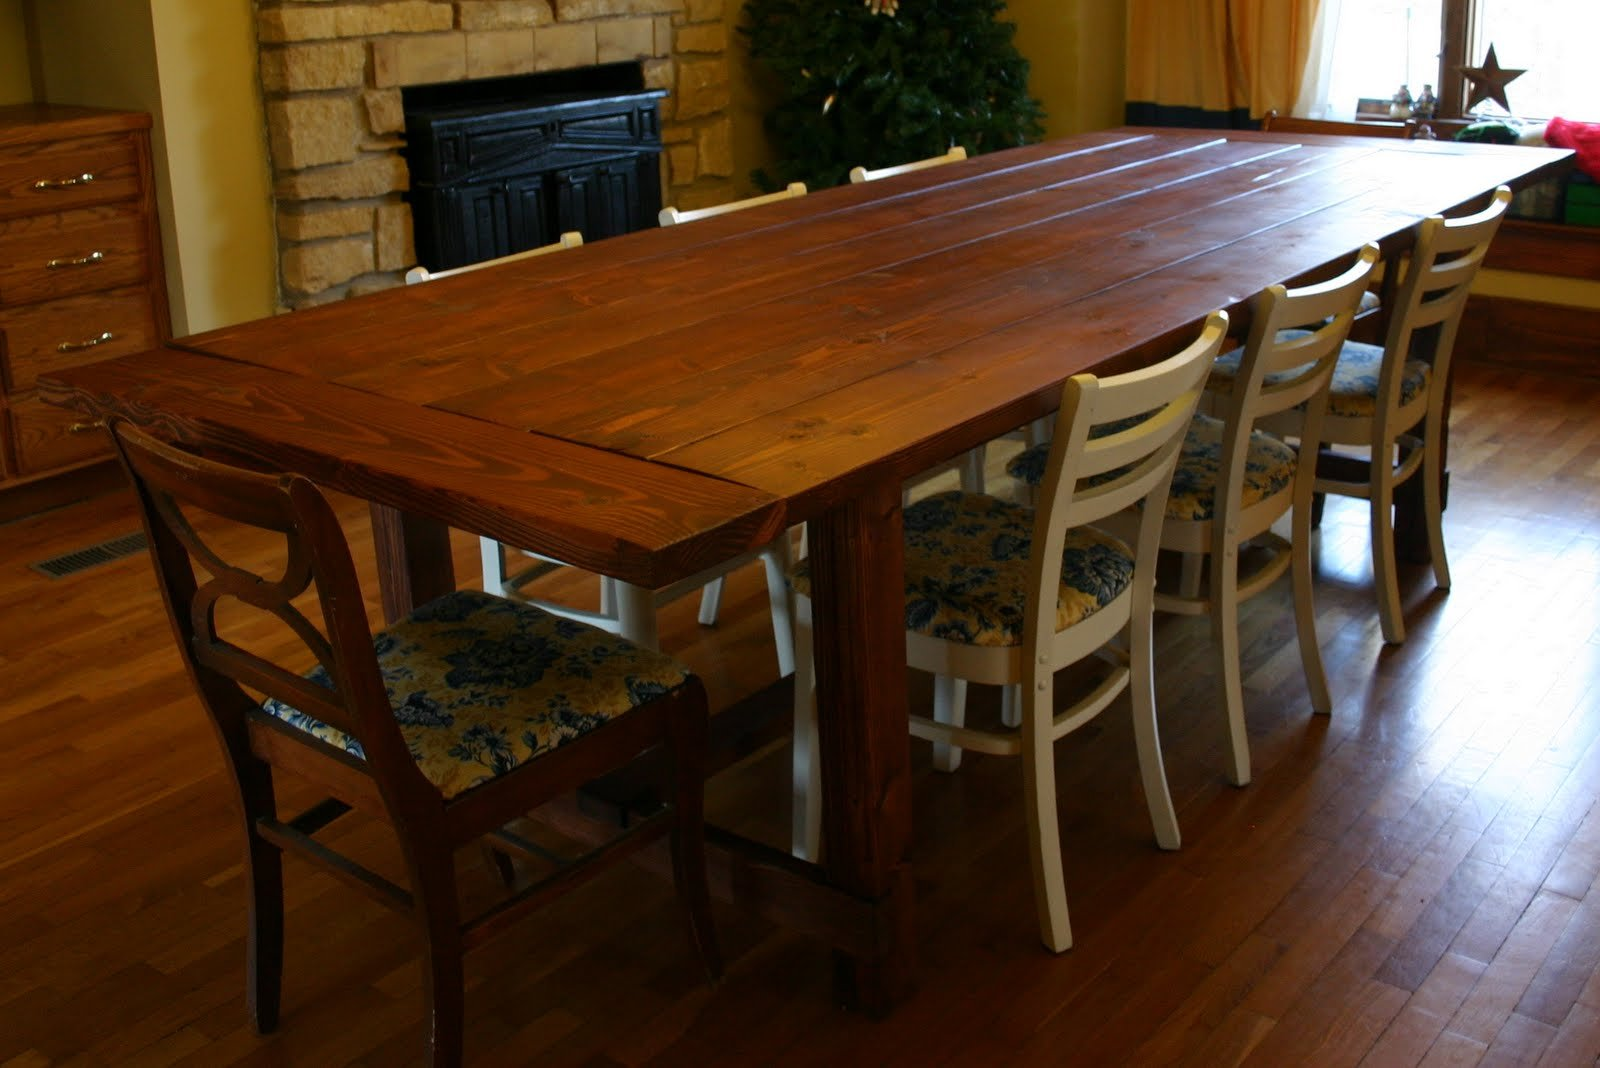 German Jello Salad: Rustic Dining Table I Built From Free